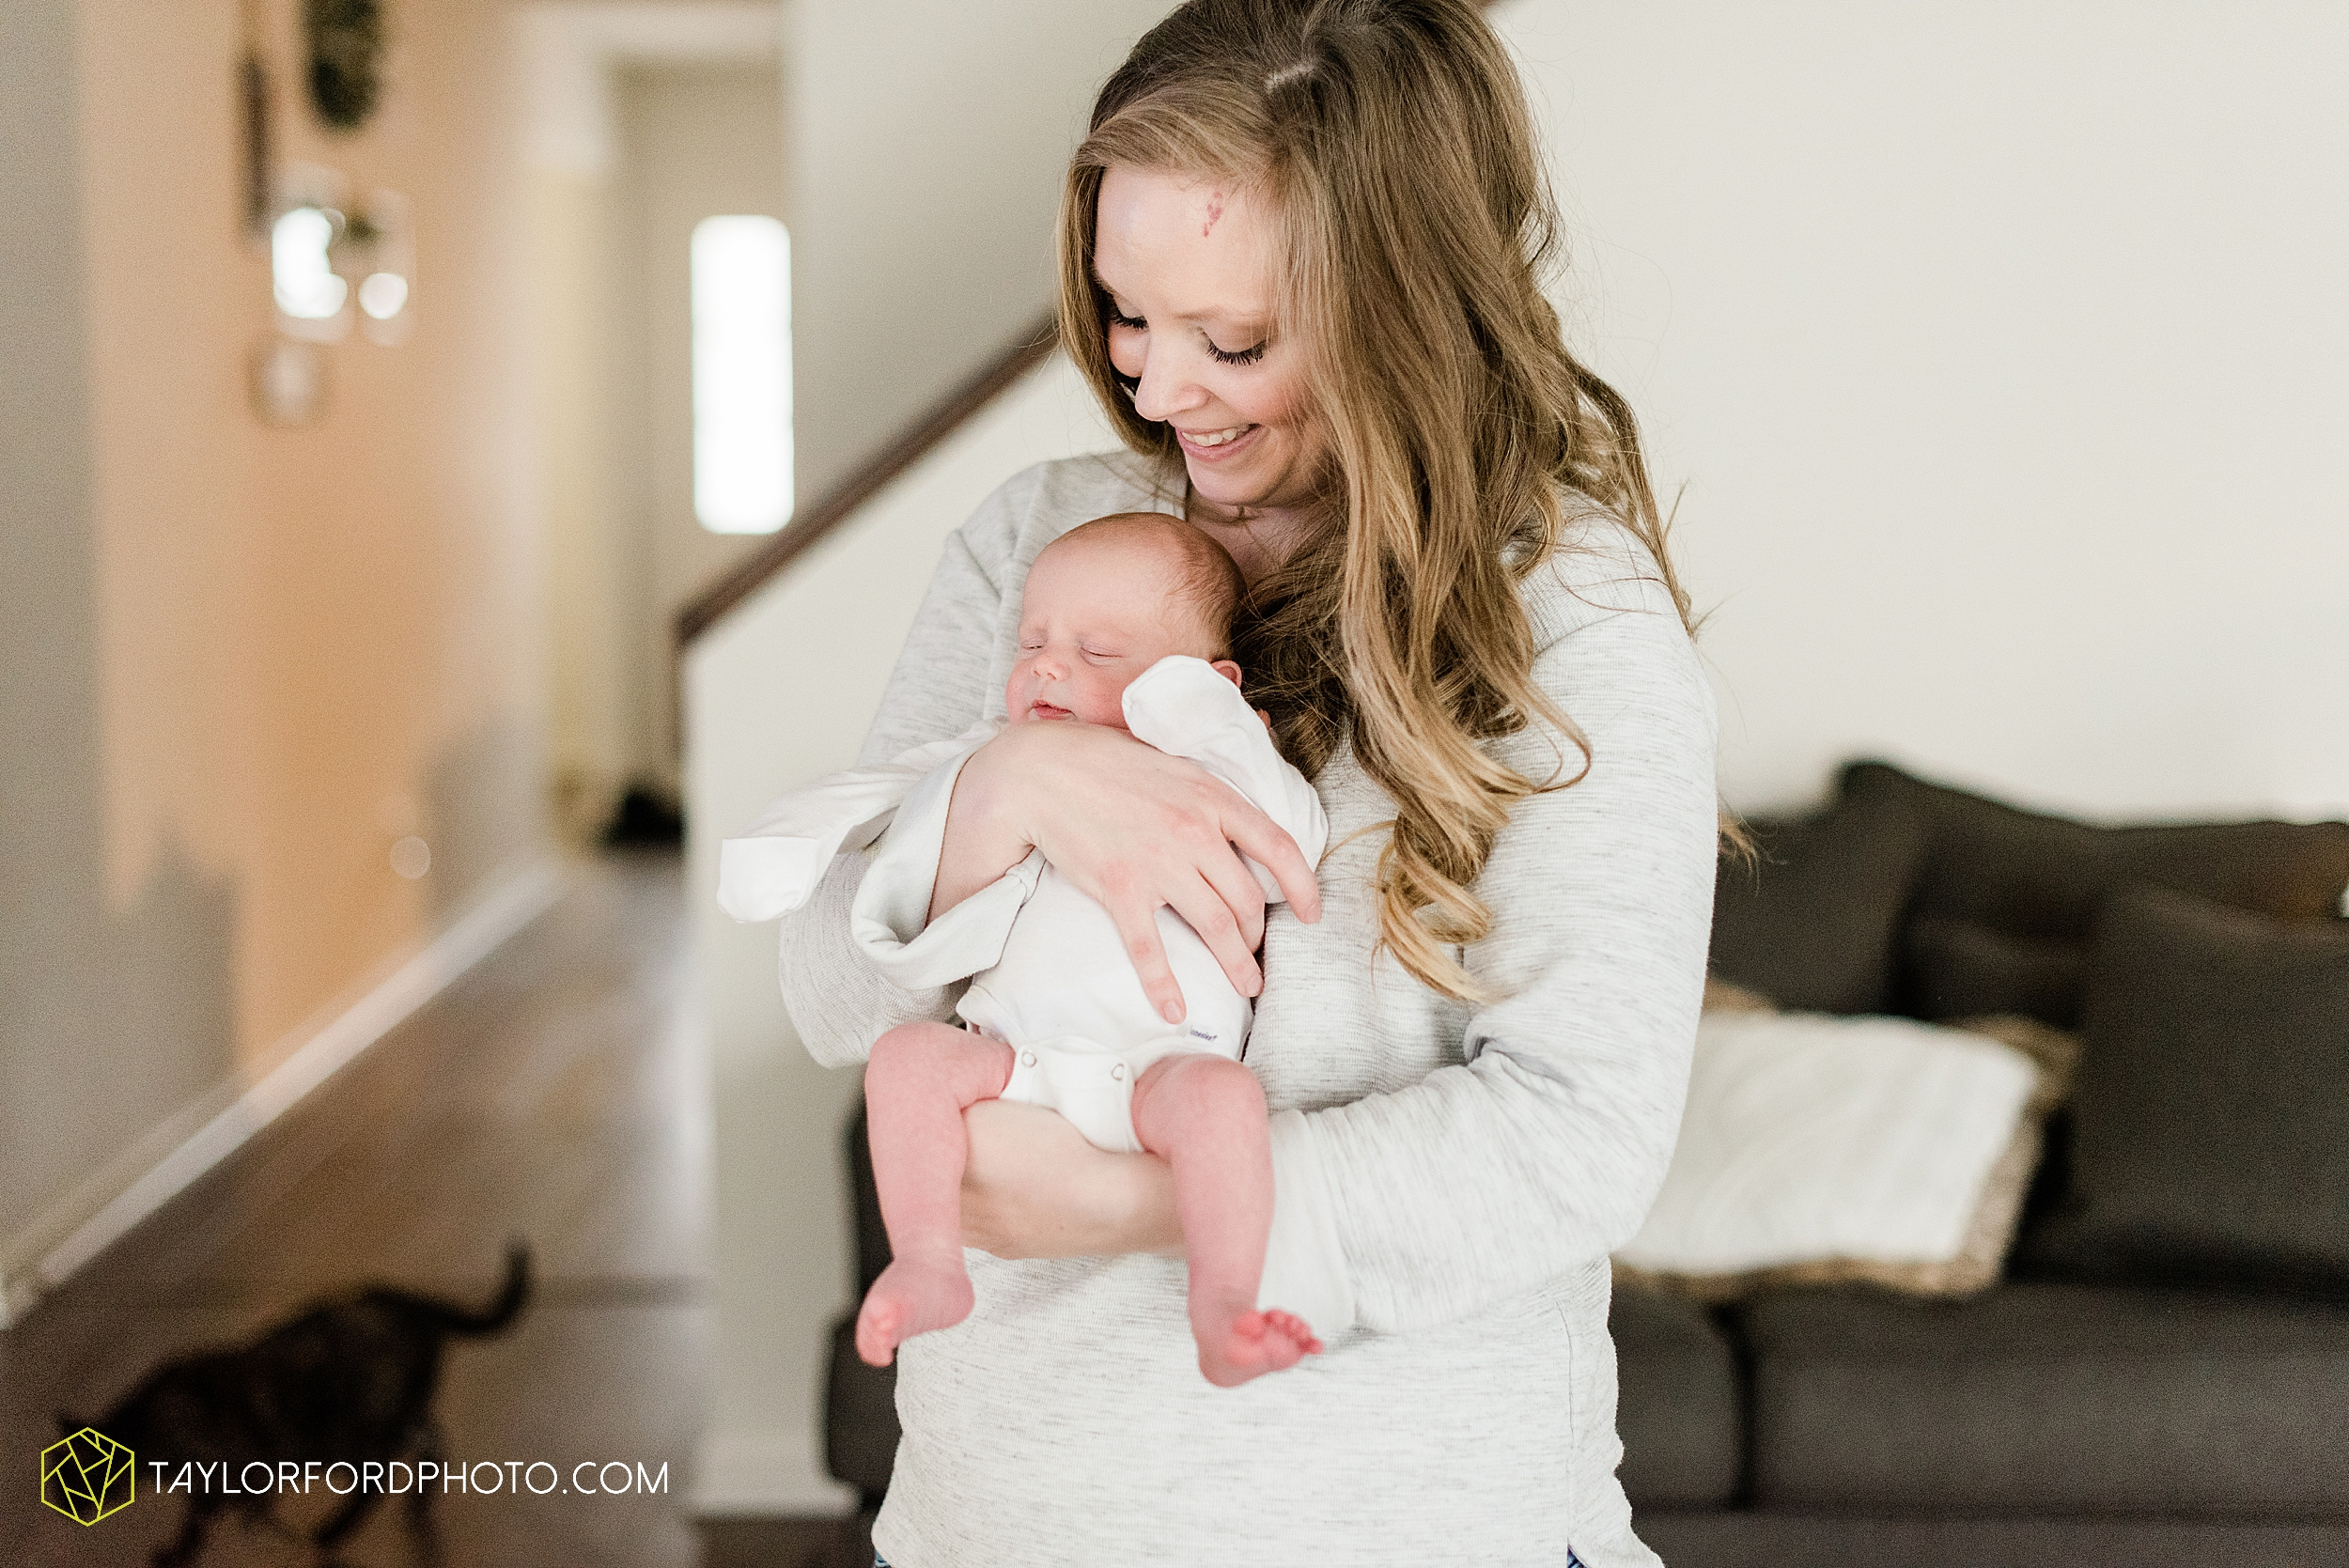 sarah-austin-harrison-lifestyle-at-home-family-newborn-fort-wayne-indiana-photography-taylor-ford-hirschy-photographer_2365.jpg